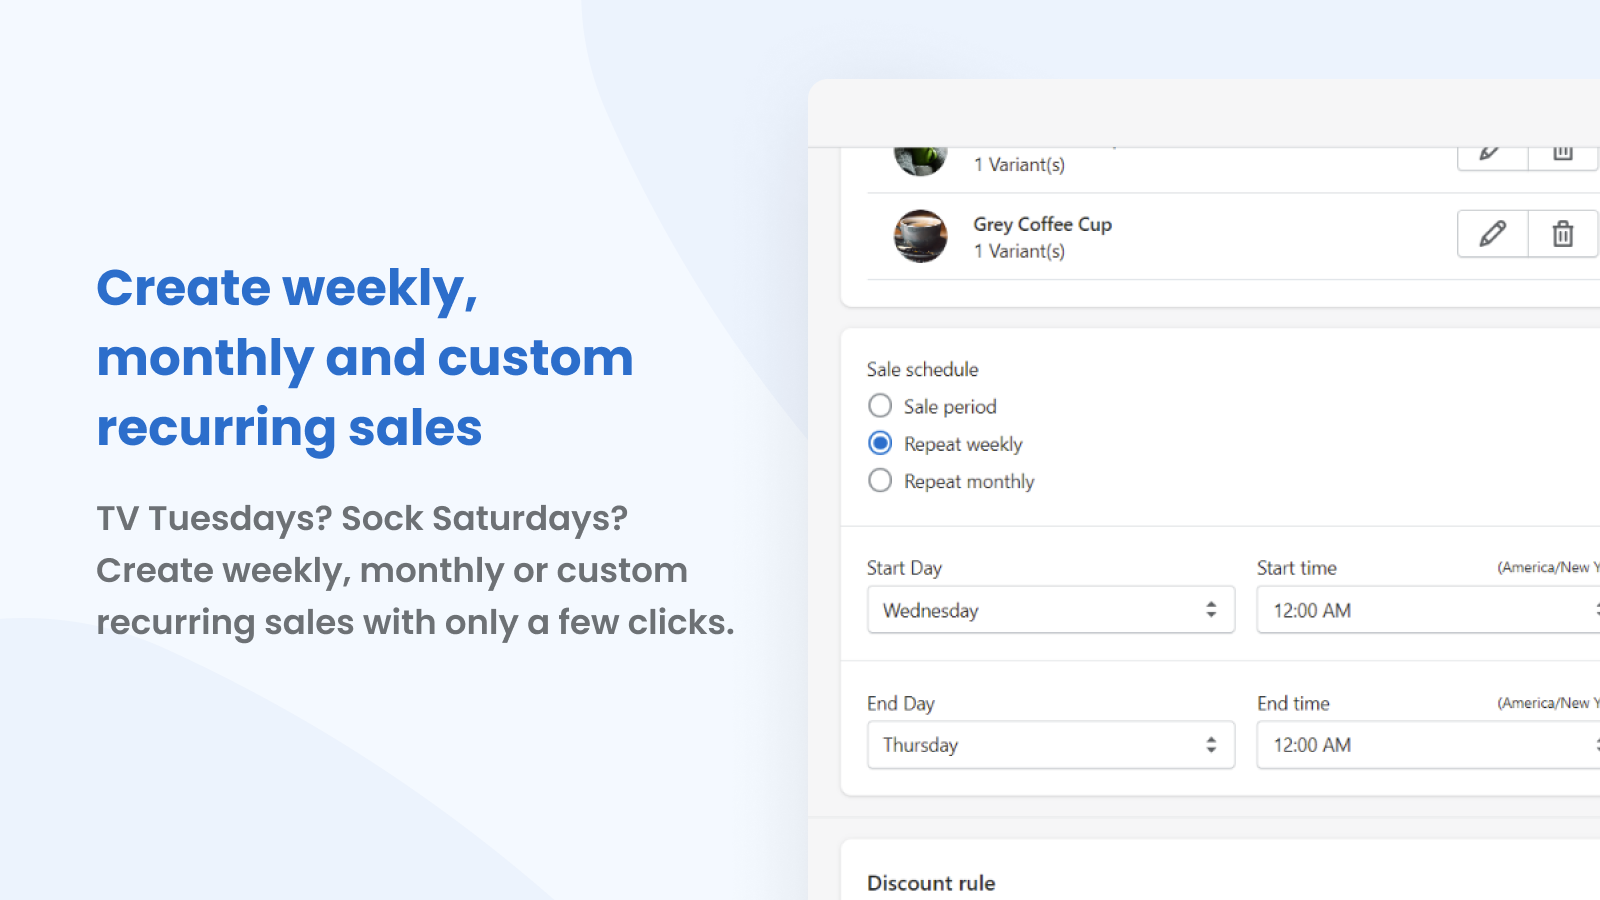 Create weekly, monthly or custom sales with only a few clicks.